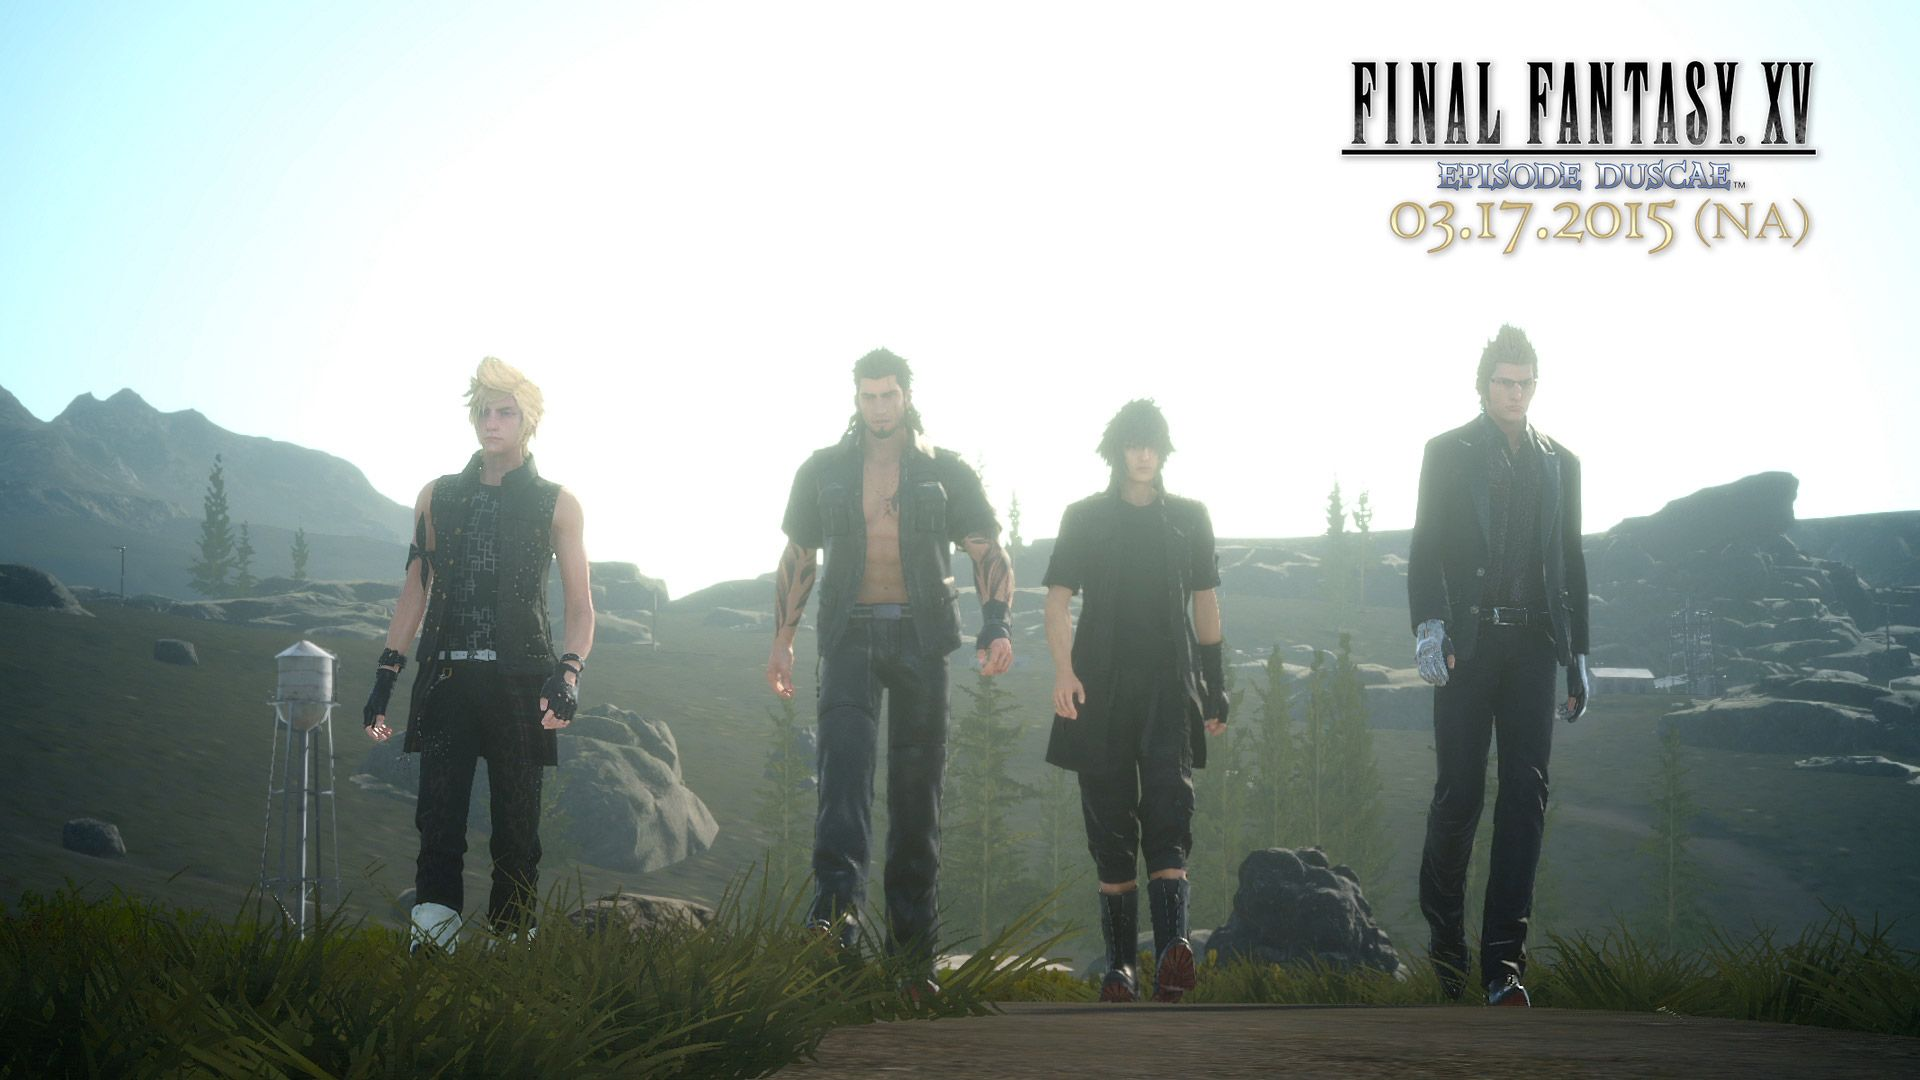 final fantasy xv wallpaper hd wallpaper 1192×670 final fantasy xv